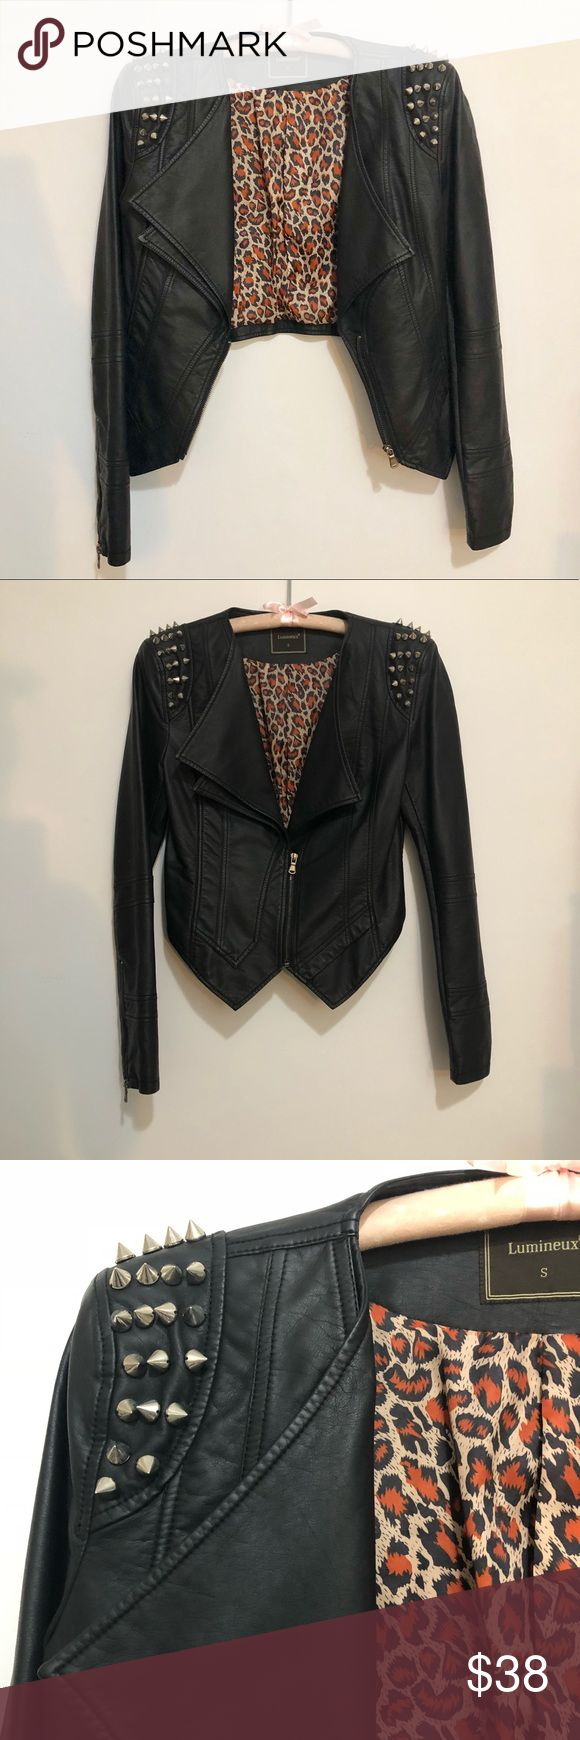 Spiked Leather Jacket Super edgy leather jacket to make a statement. Leopard printed lining. In perfect condition. Can wear it open or closed. Lumineux Jackets & Coats